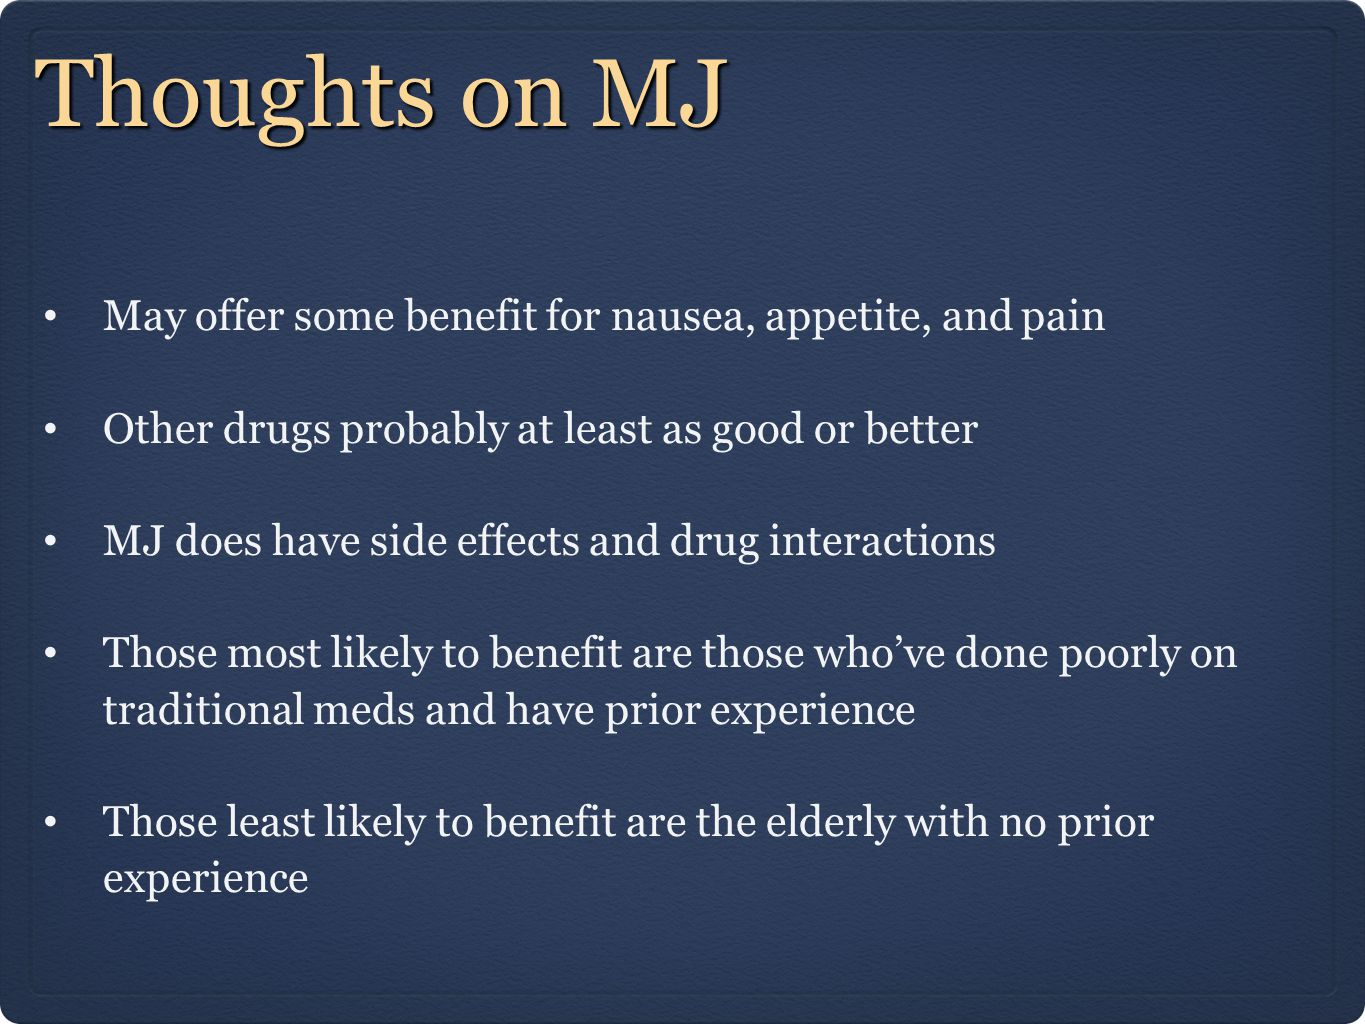 Thoughts on MJ May offer some benefit for nausea, appetite, and pain Other drugs probably at least as good or better MJ does have side effects and drug interactions Those most likely to benefit are those who've done poorly on traditional meds and have prior experience Those least likely to benefit are the elderly with no prior experience